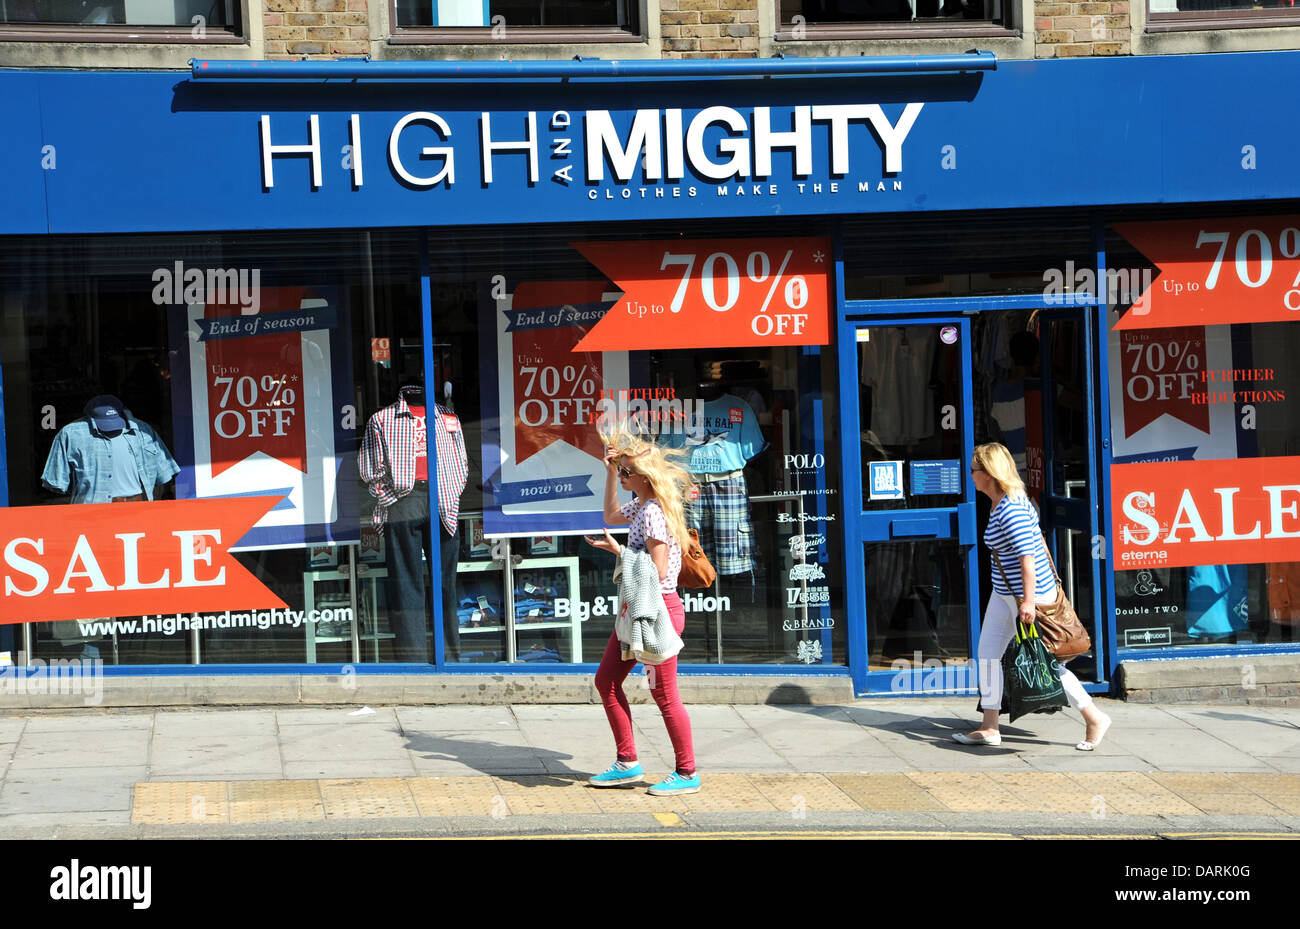 High and Mighty speciality Clothing shop for larger people with sale offer signs on window Brighton UK - Stock Image